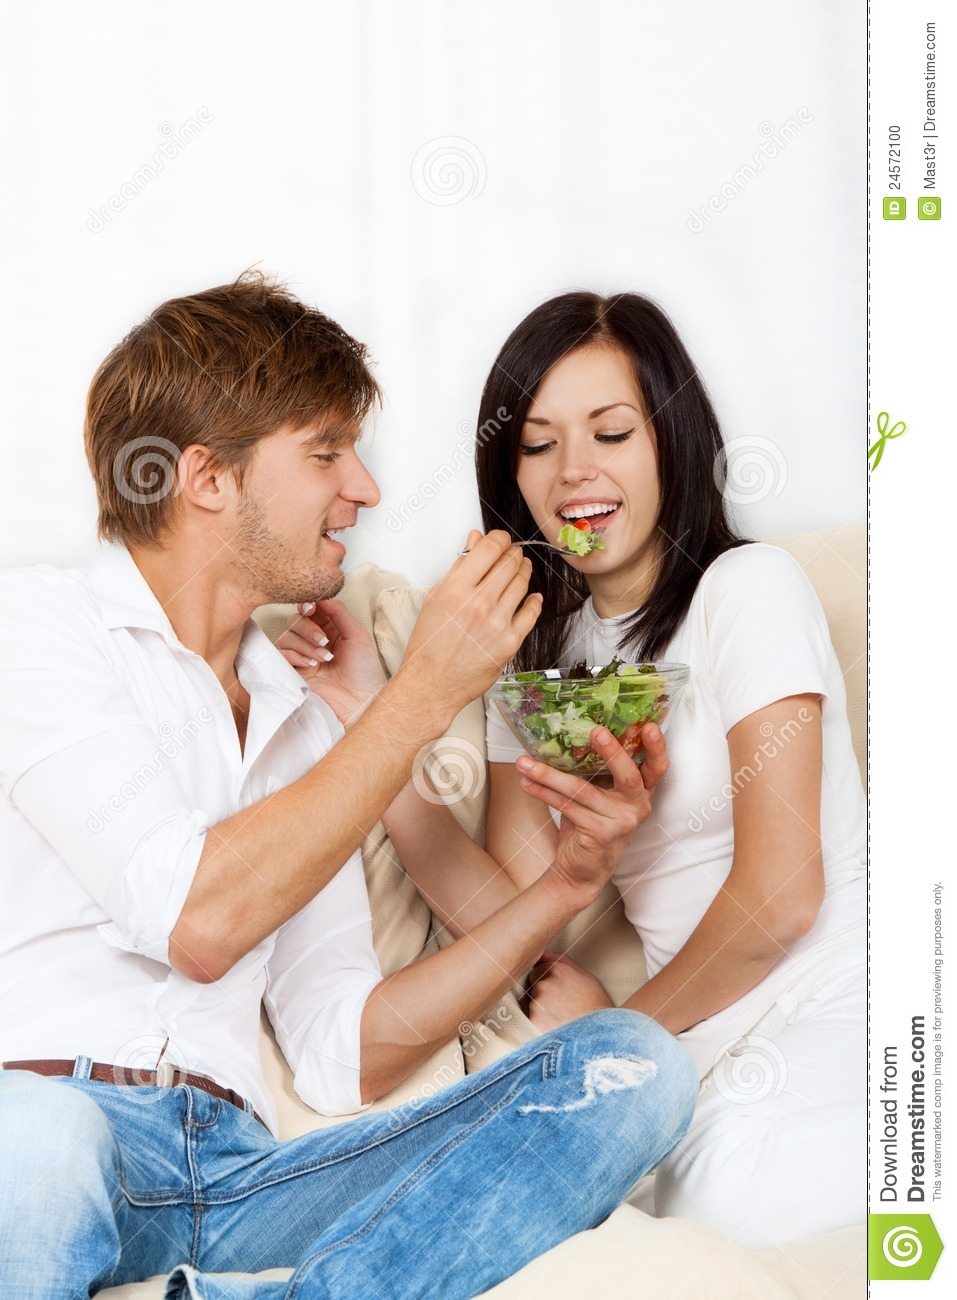 Stock Photo Young Couple Image24572100